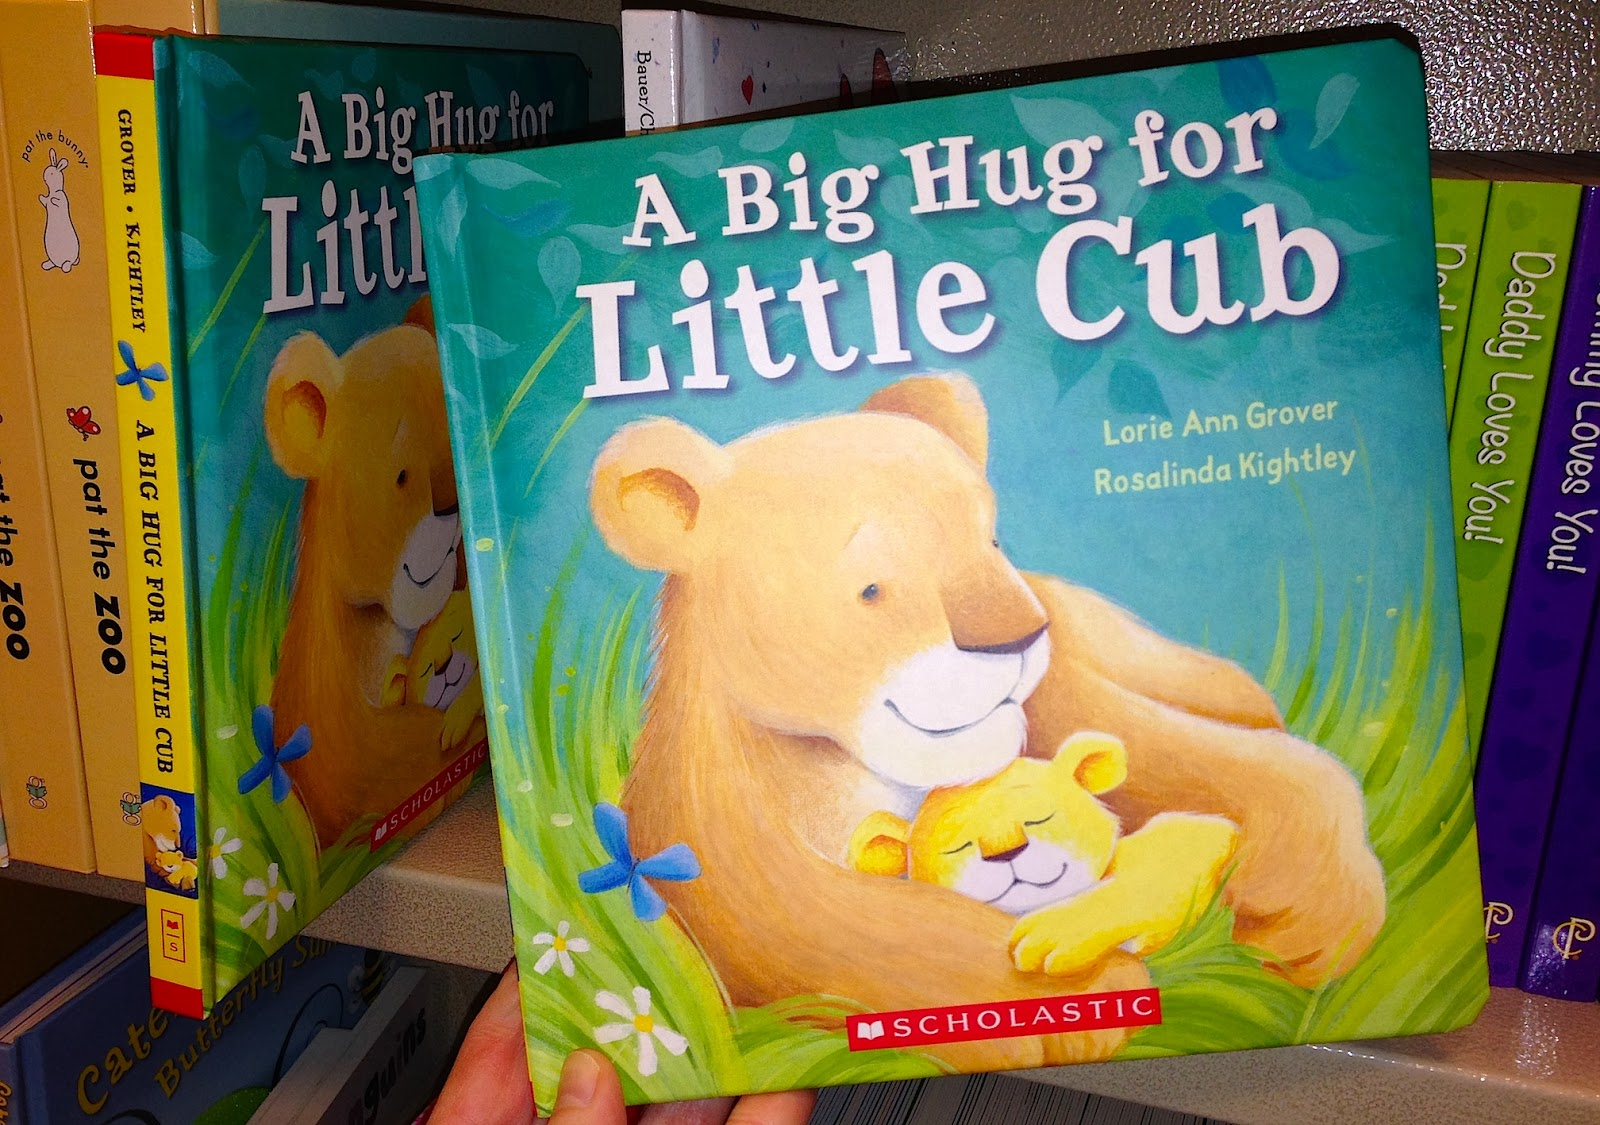 http://www.amazon.com/Big-Hug-Little-Lorie-Grover/dp/0545530911/ref=sr_1_1?s=books&ie=UTF8&qid=1393546164&sr=1-1&keywords=grover+cub